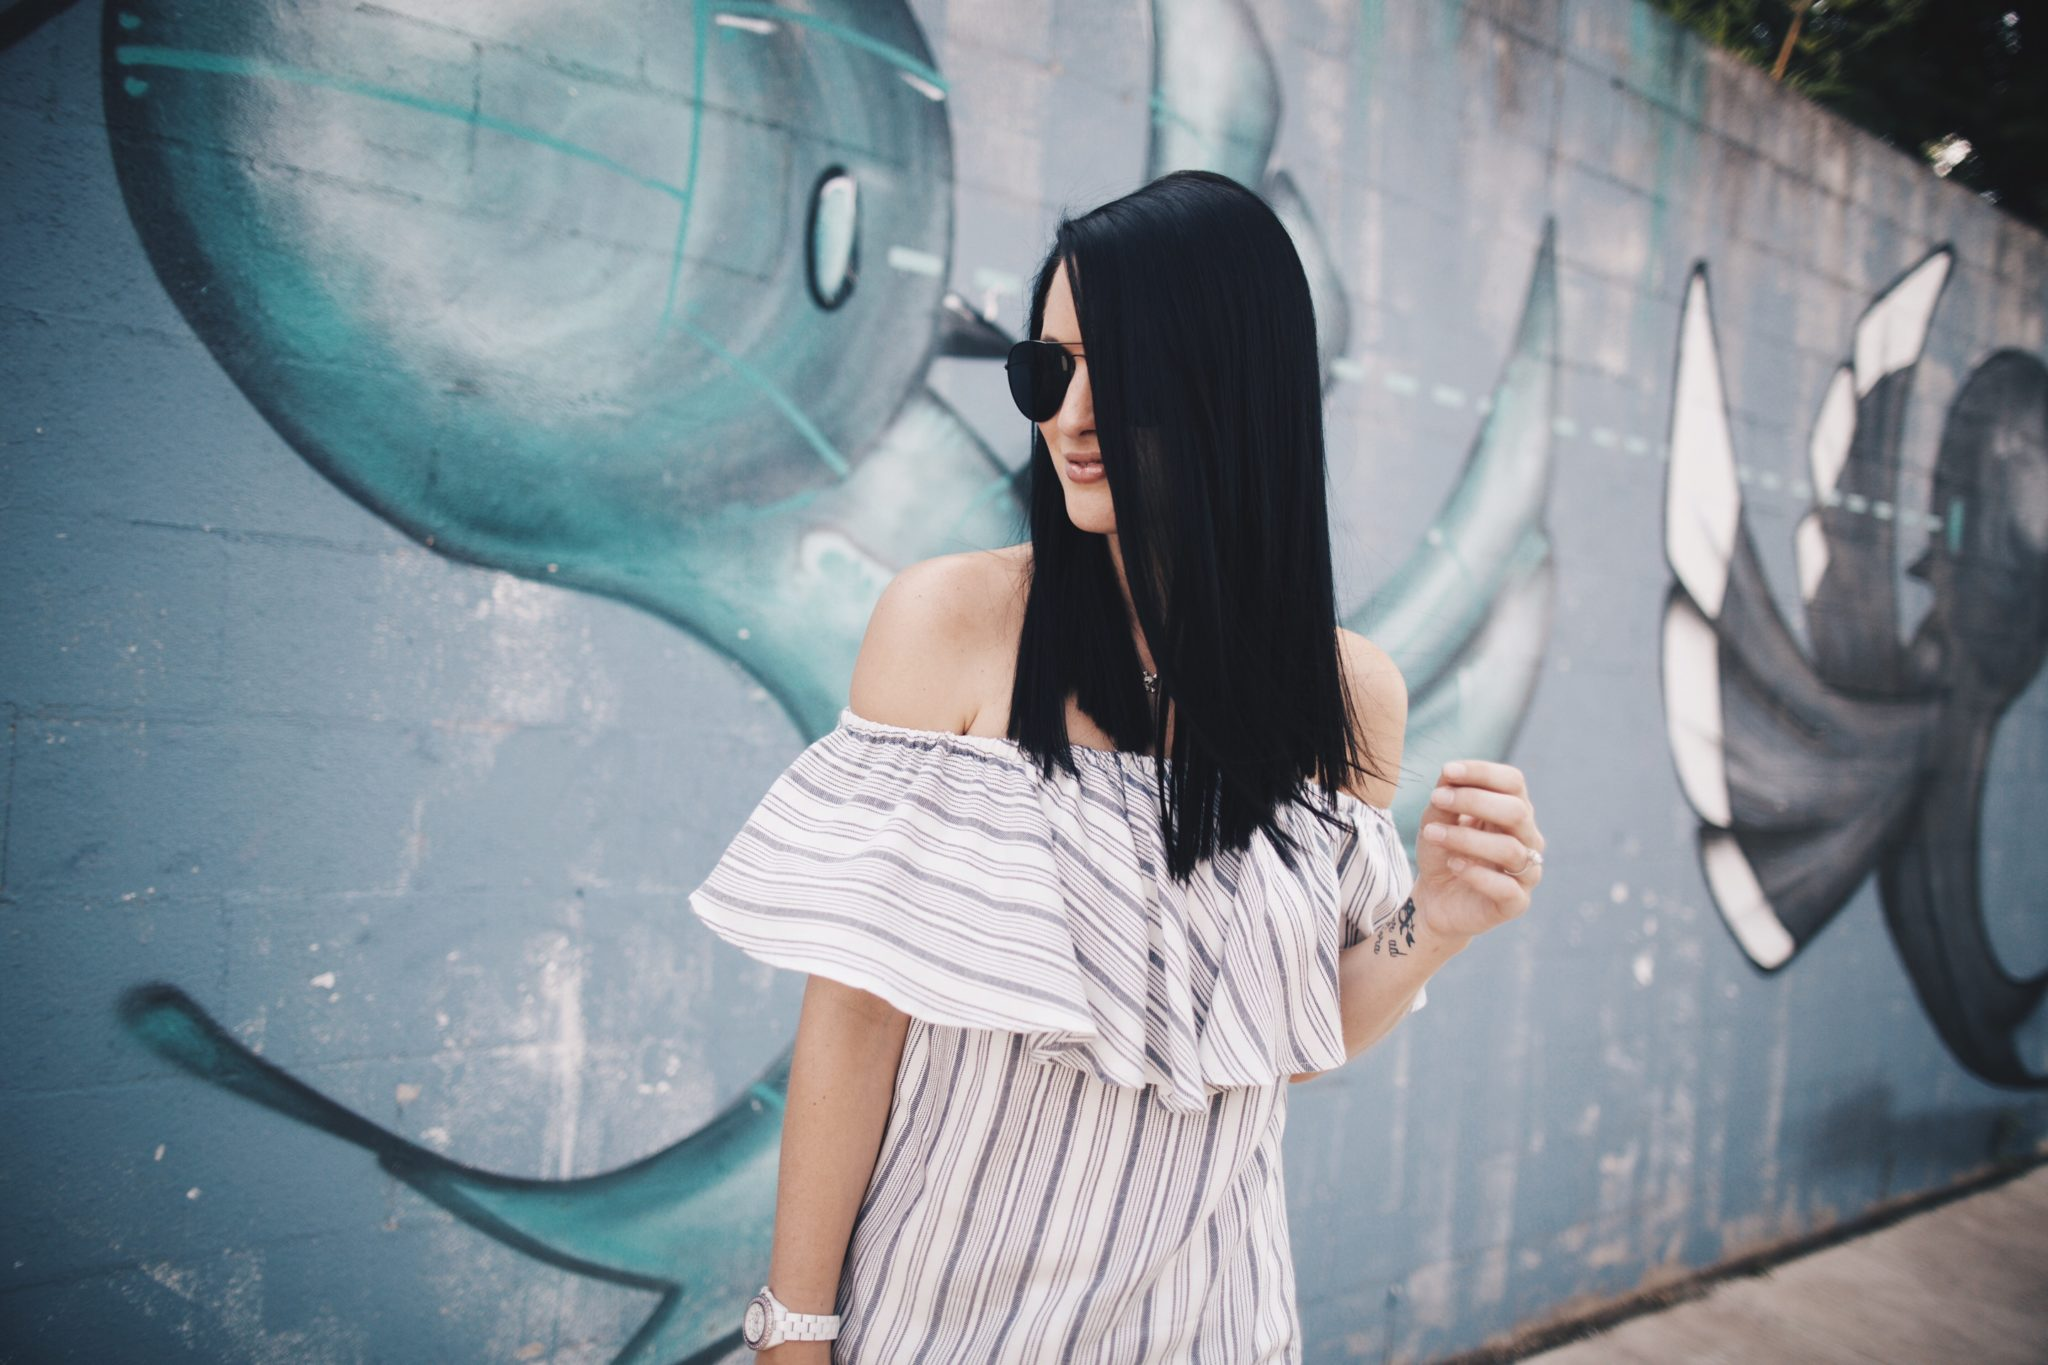 Off the Shoulder Top and Linen Pants | summer fashion tips | summer outfit ideas | summer style tips | what to wear for summer | warm weather fashion | fashion for summer | style tips for summer | outfit ideas for summer || Dressed to Kill